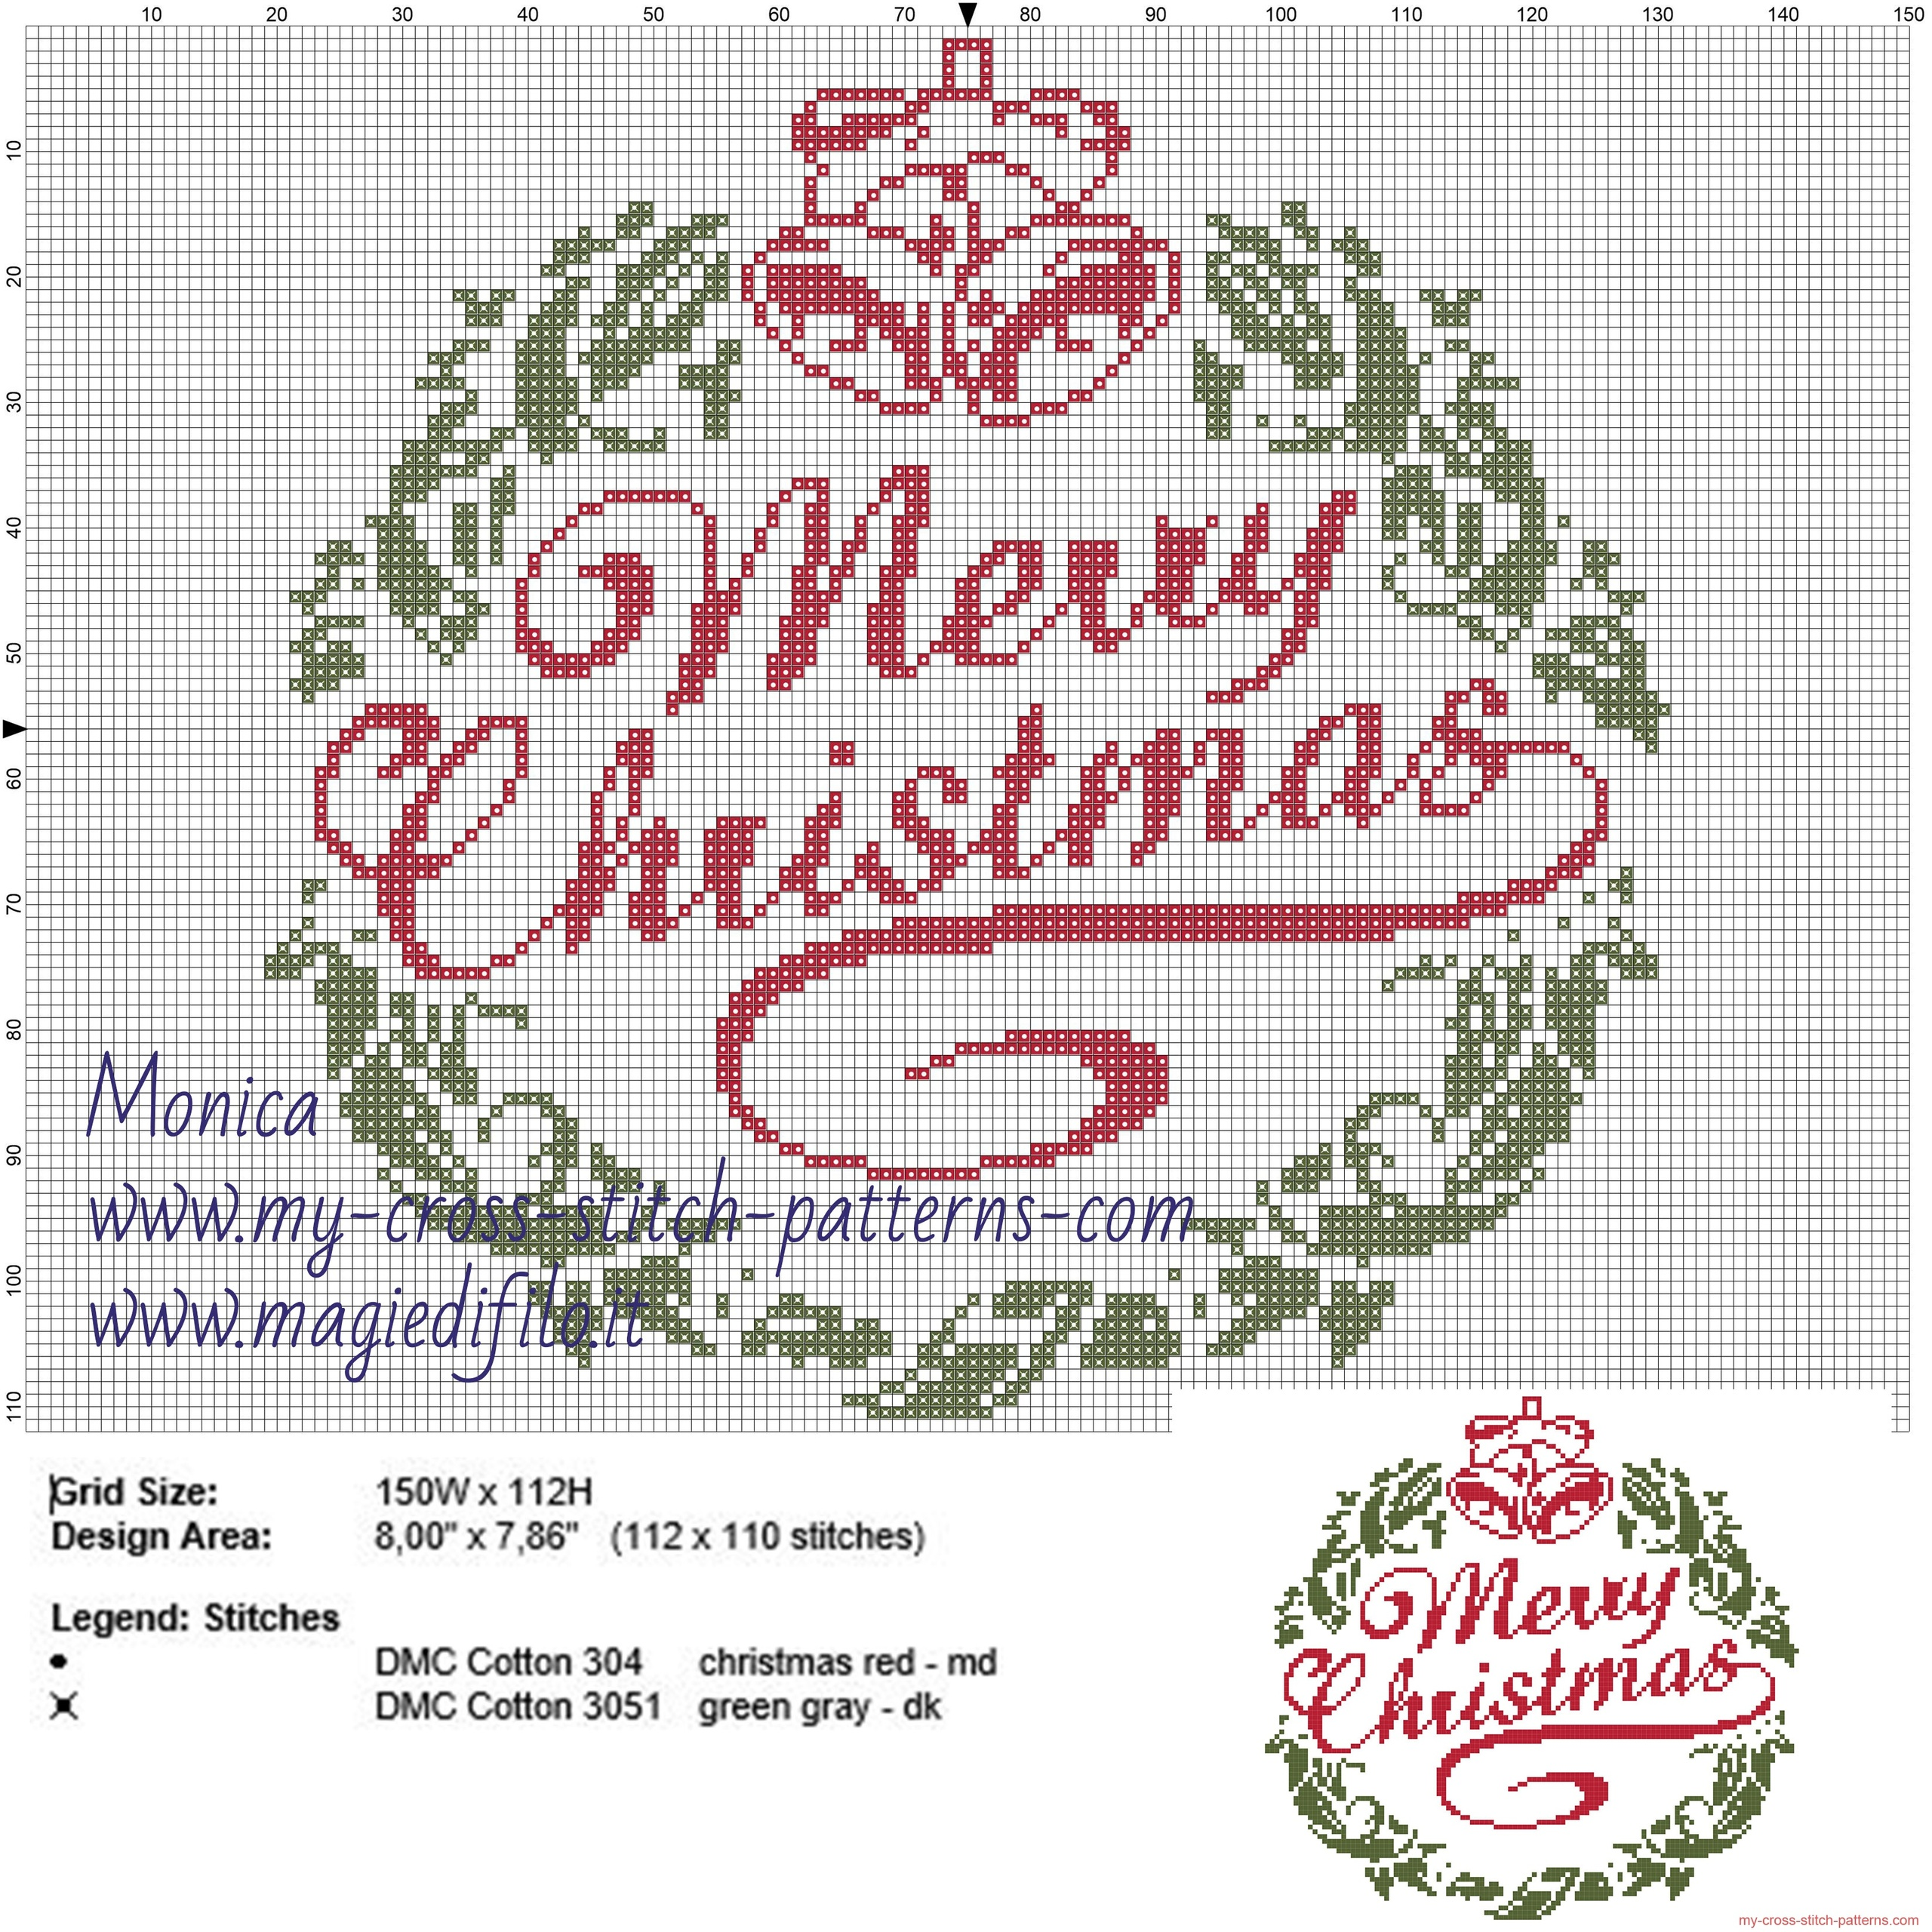 merry_christmas_cross_stitch_pattern_